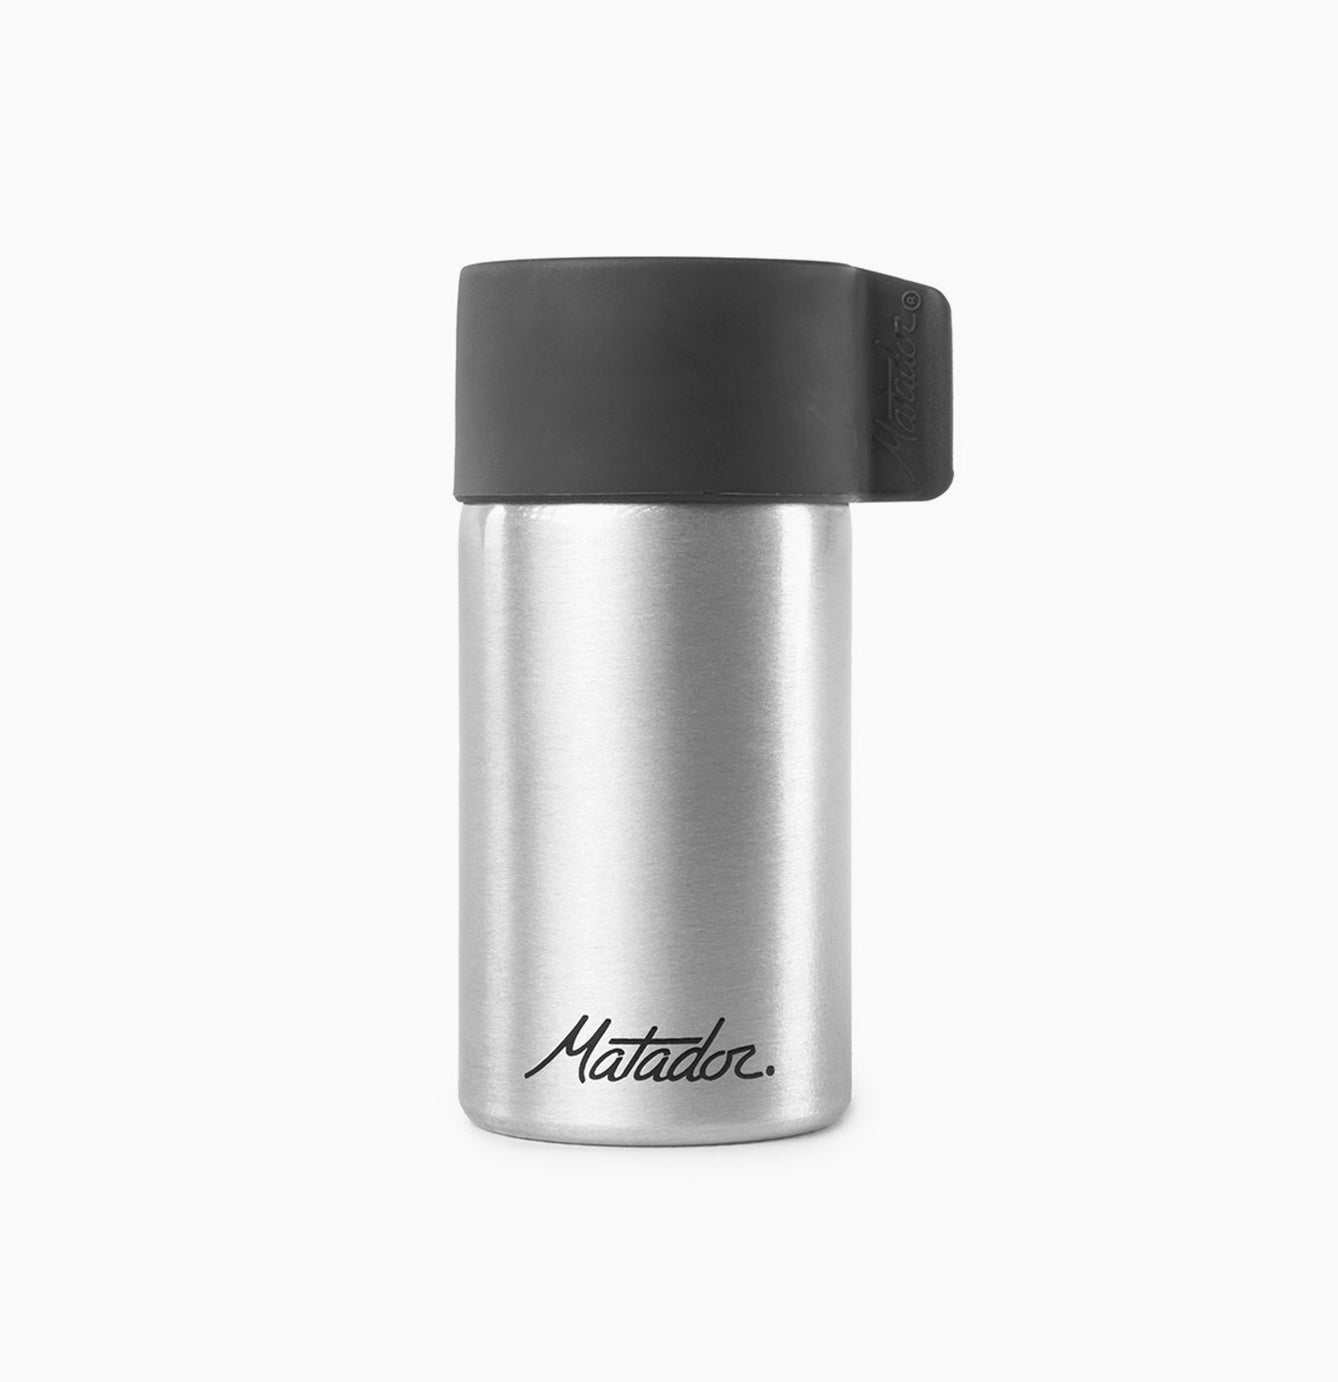 Front view of canister on white background